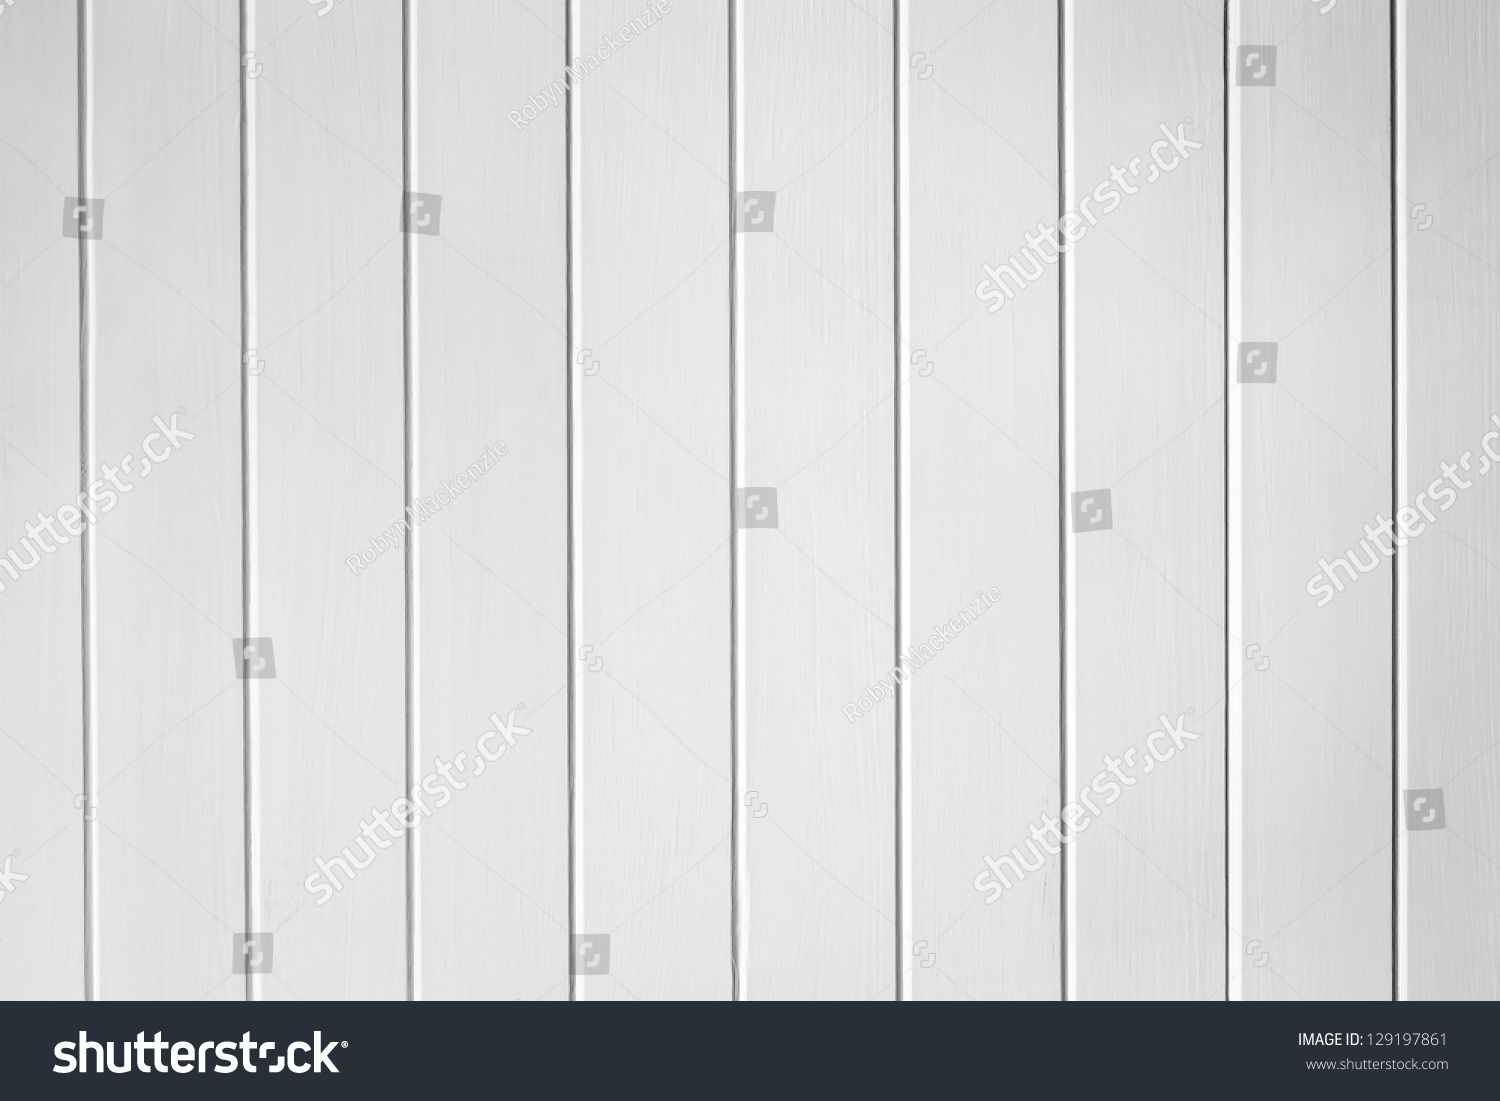 White Wood Panel Paneling Panelling Texture Stock Photo